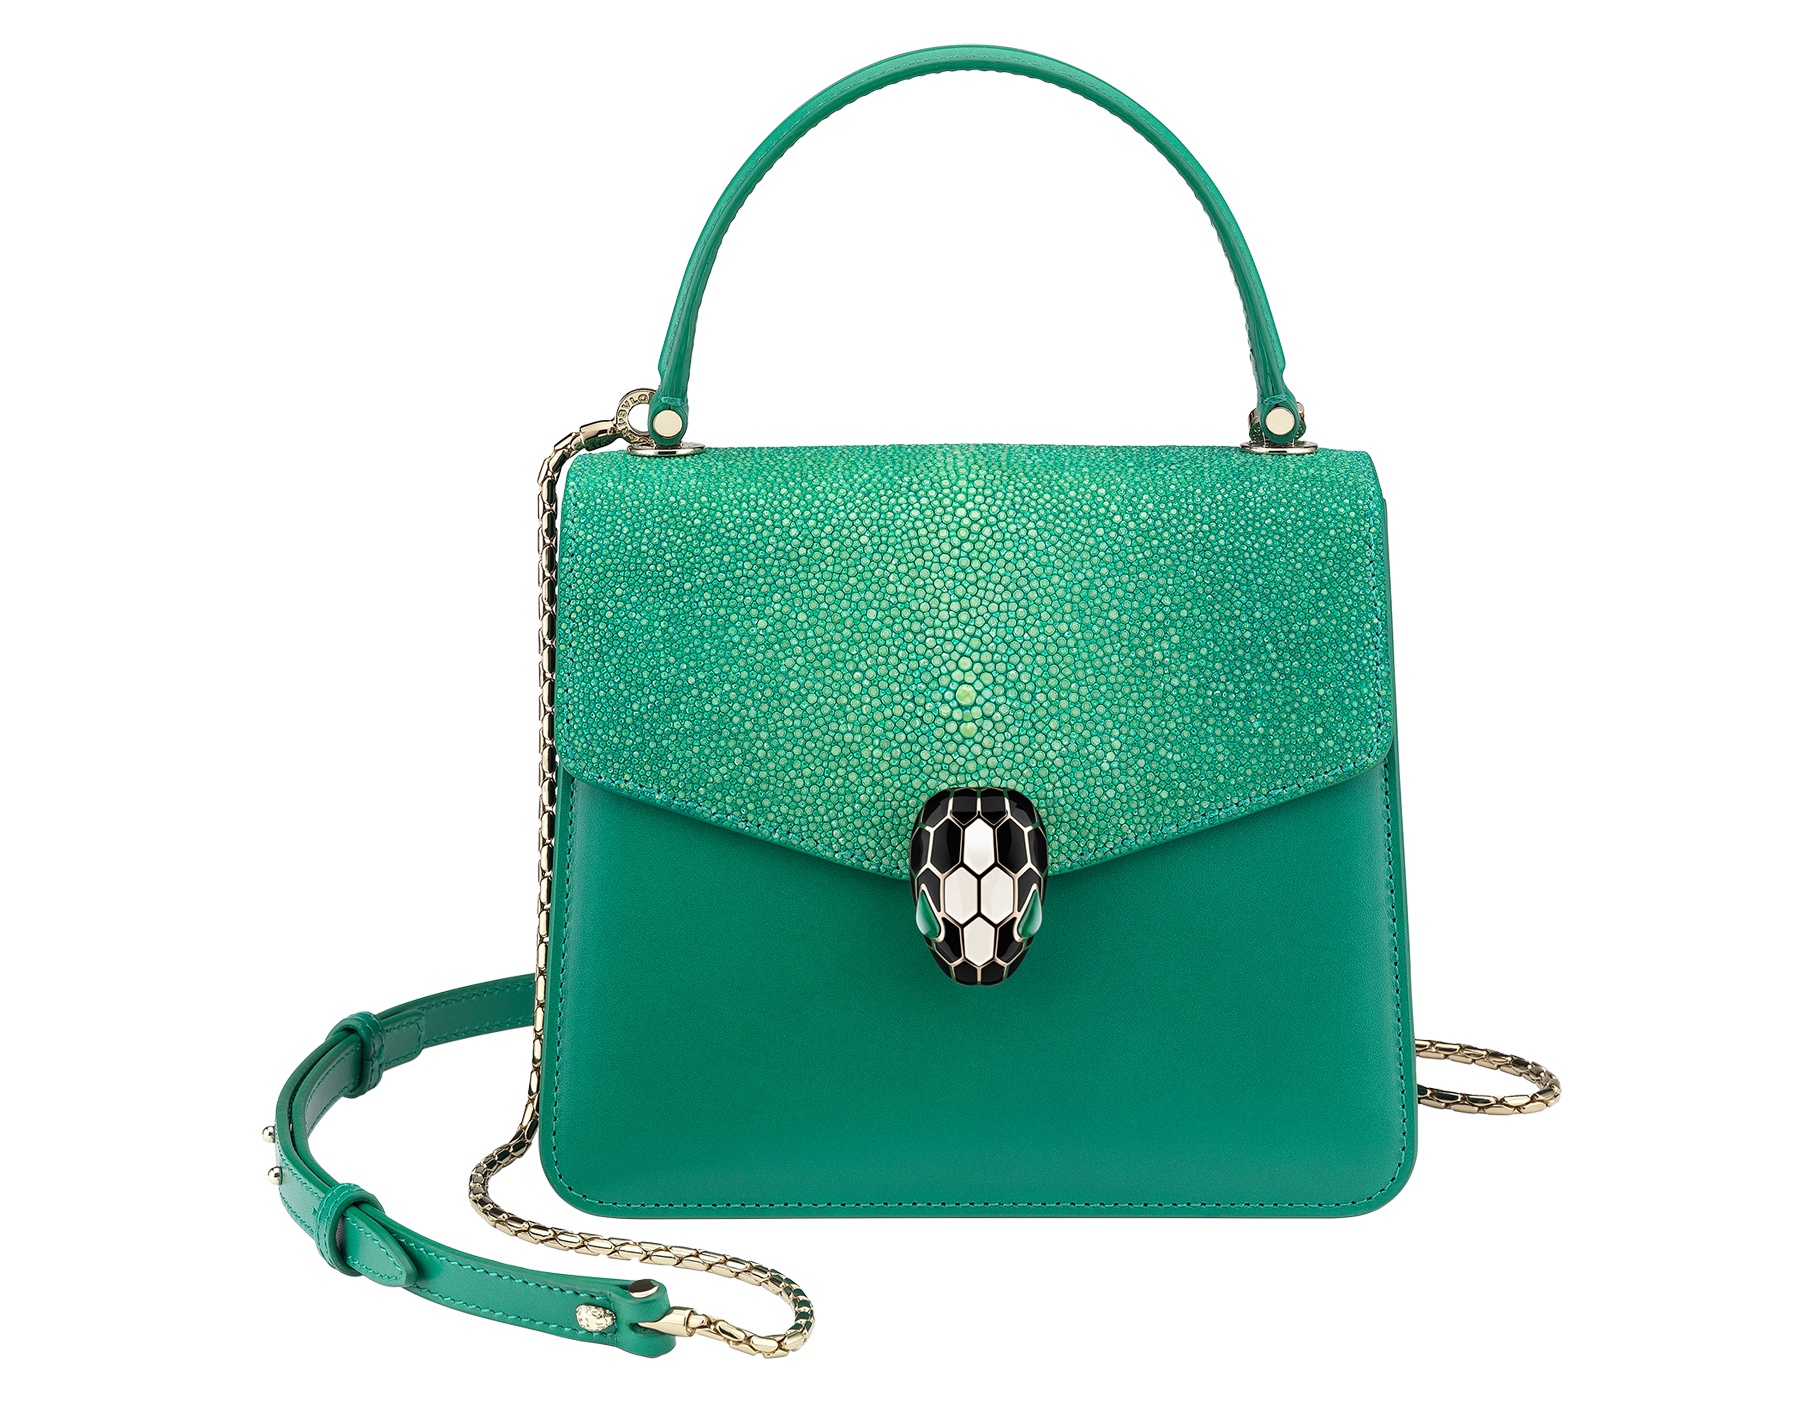 Serpenti Forever crossbody bag in sea star coral galuchat skin and smooth calf leather. Snakehead closure in light gold plated brass decorated with black and white enamel, and green malachite eyes. 752-Ga image 1